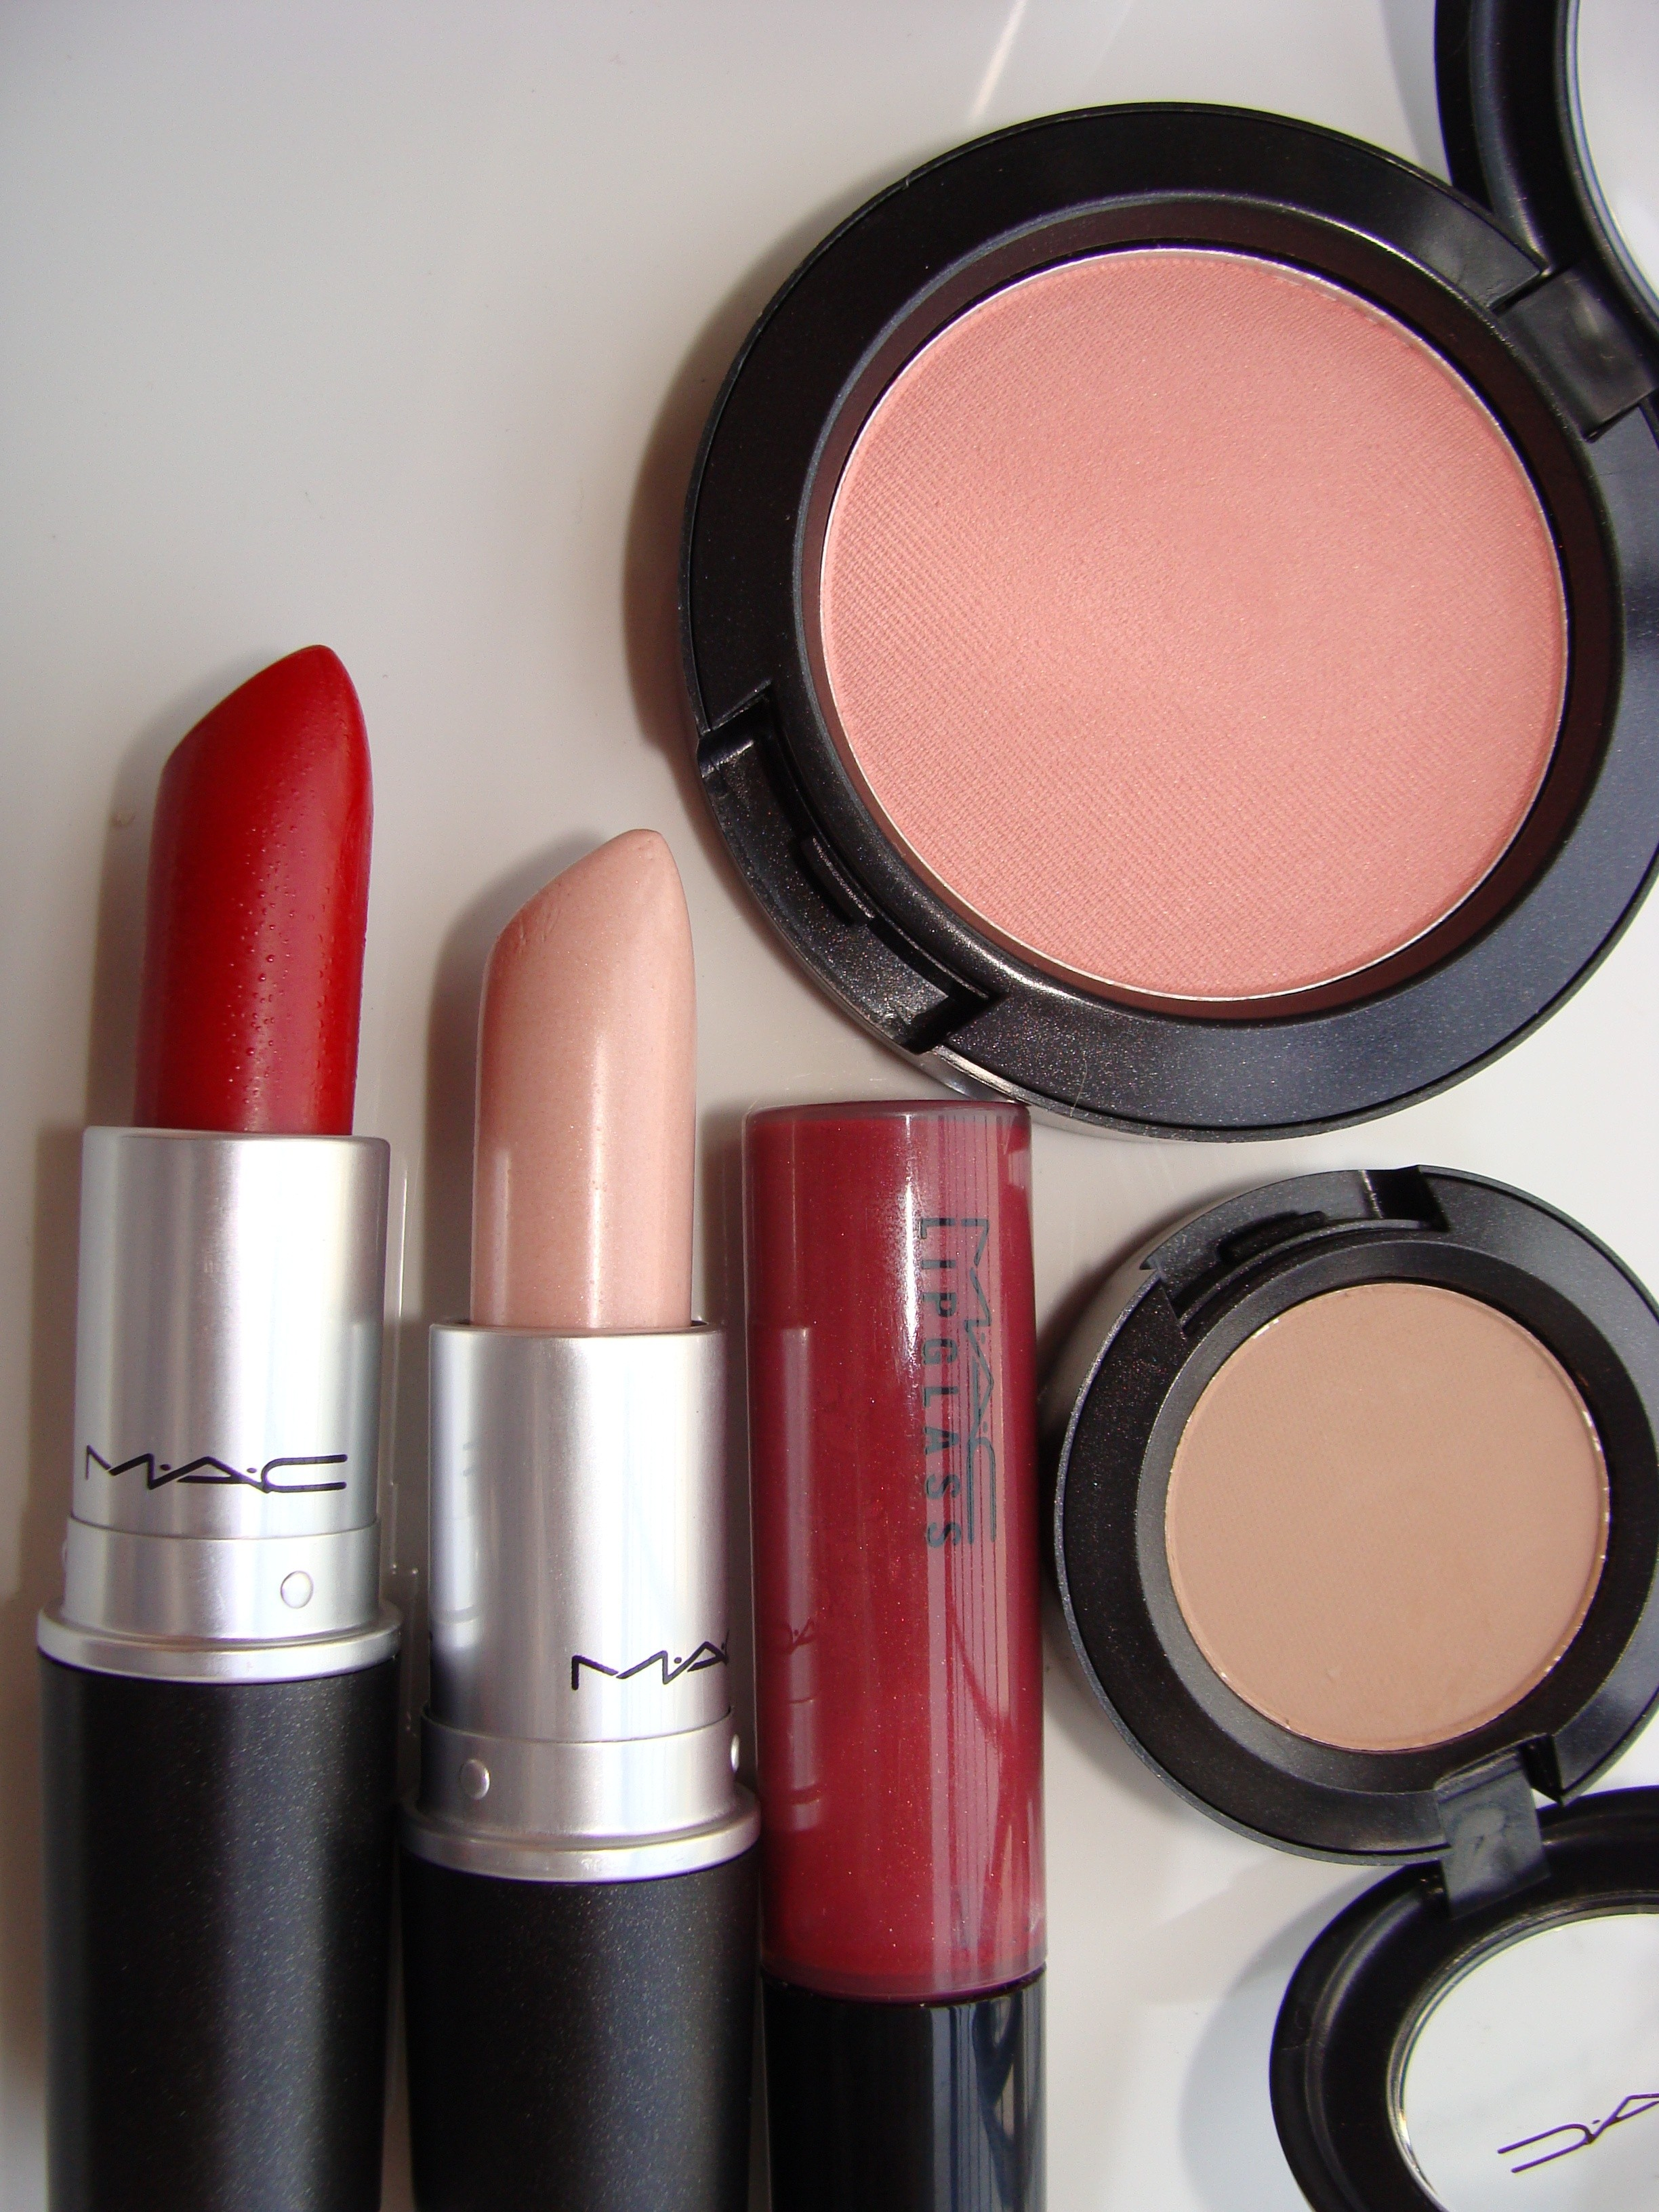 Fastest Is Mac A Good Brand For Makeup